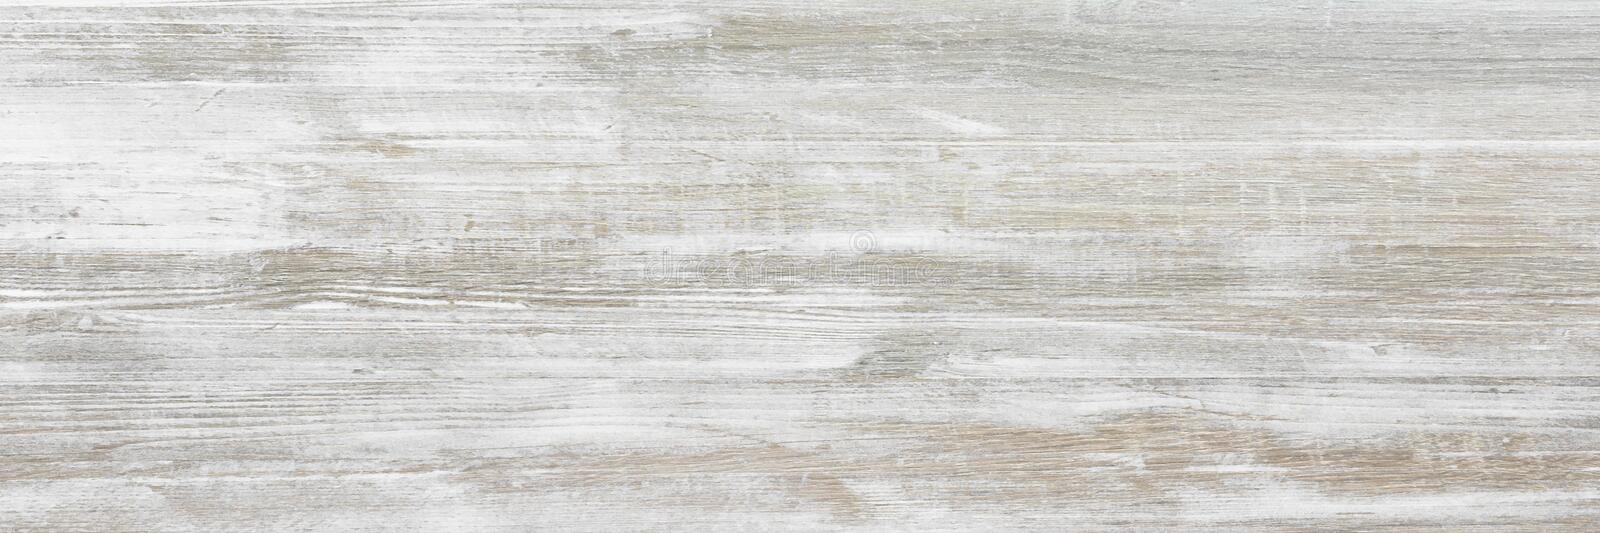 Washed wood texture, white wooden abstract background. Wood washed background, white texture wooden abstract royalty free stock photos